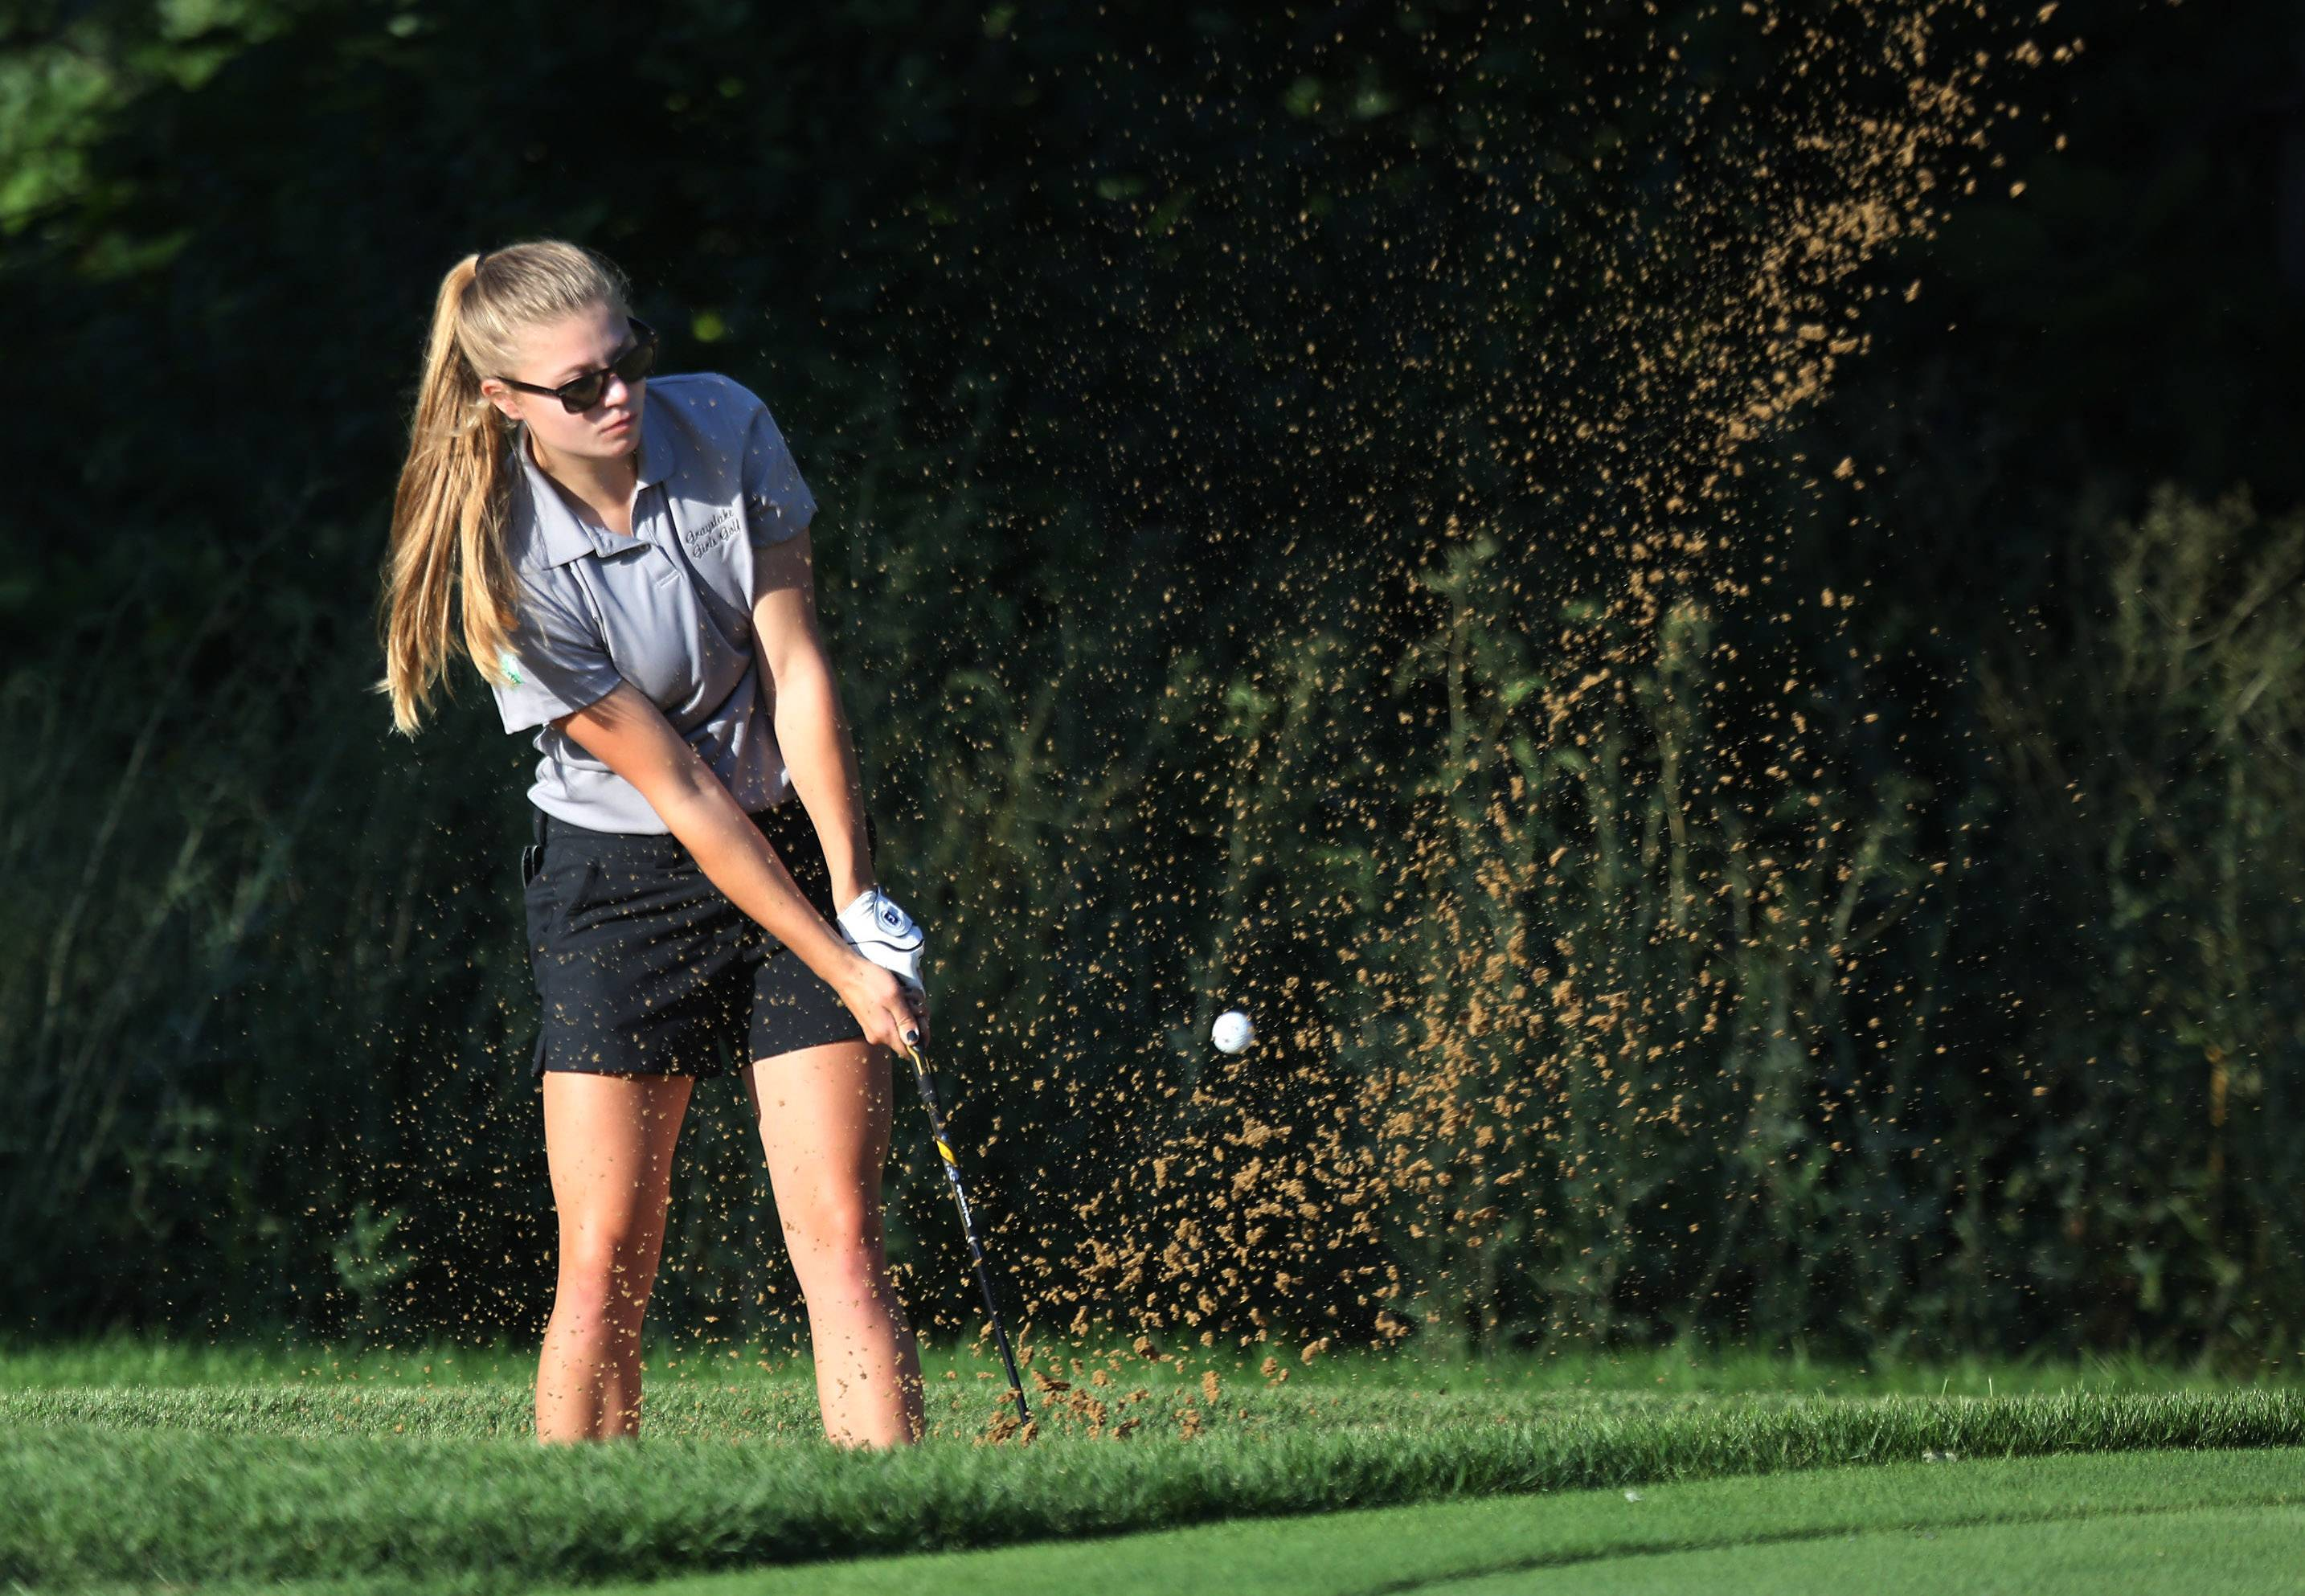 Grayslake golfer Kim Balling hits out of a sand trap on the 9th hole during the match between Grayslake and Marengo on Thursday at Brae Loch Golf Course in Grayslake.